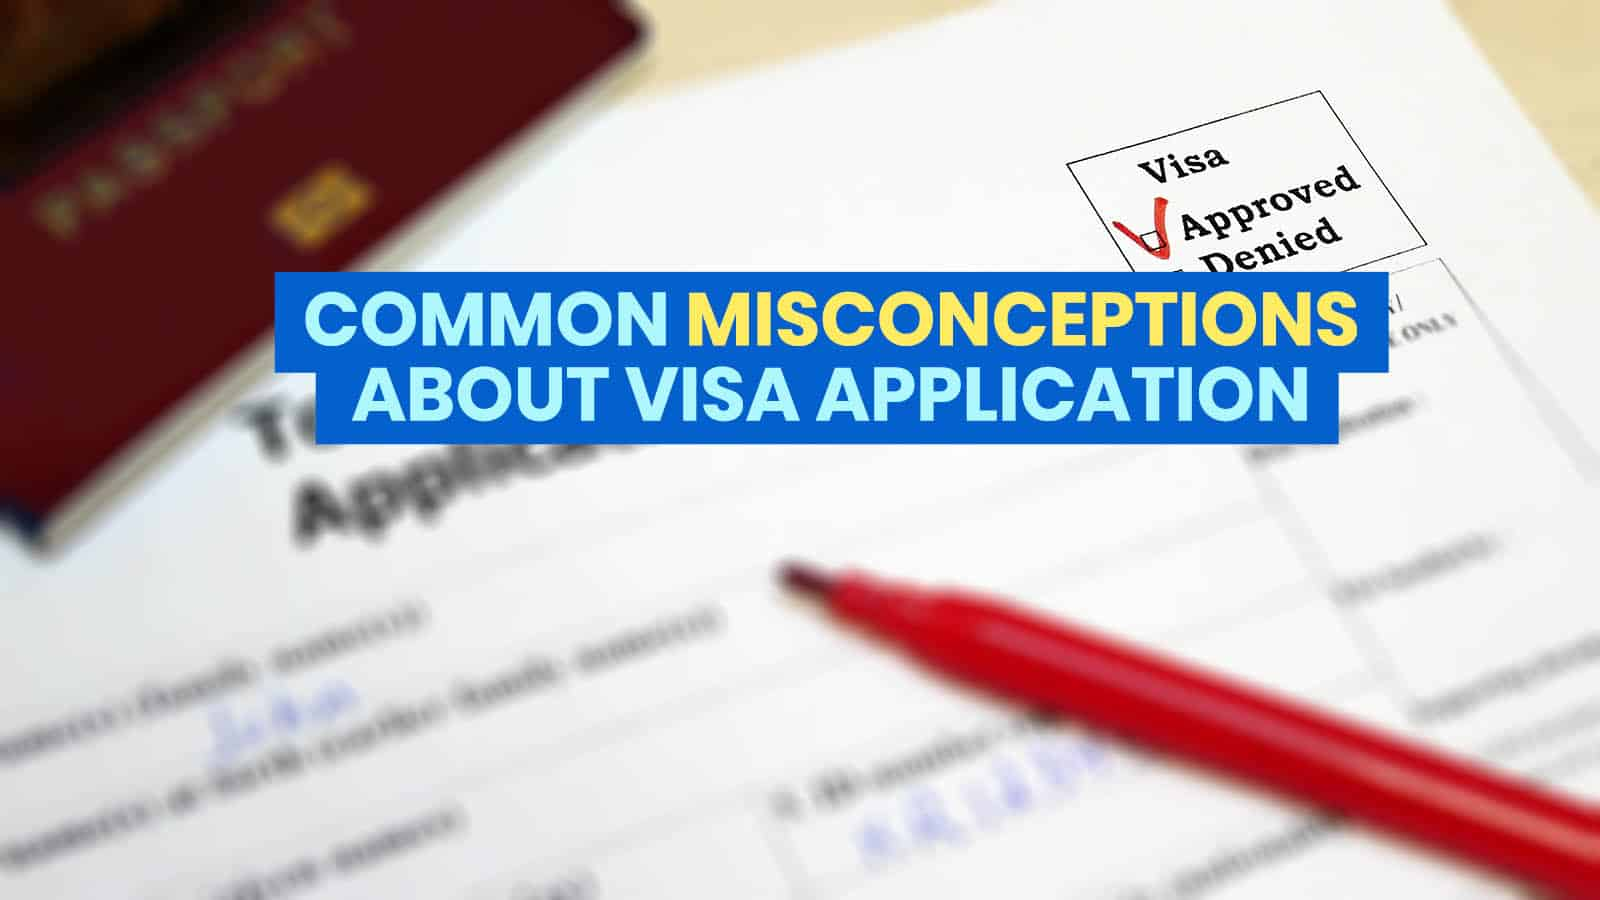 12 Common Misconceptions About VISA APPLICATION